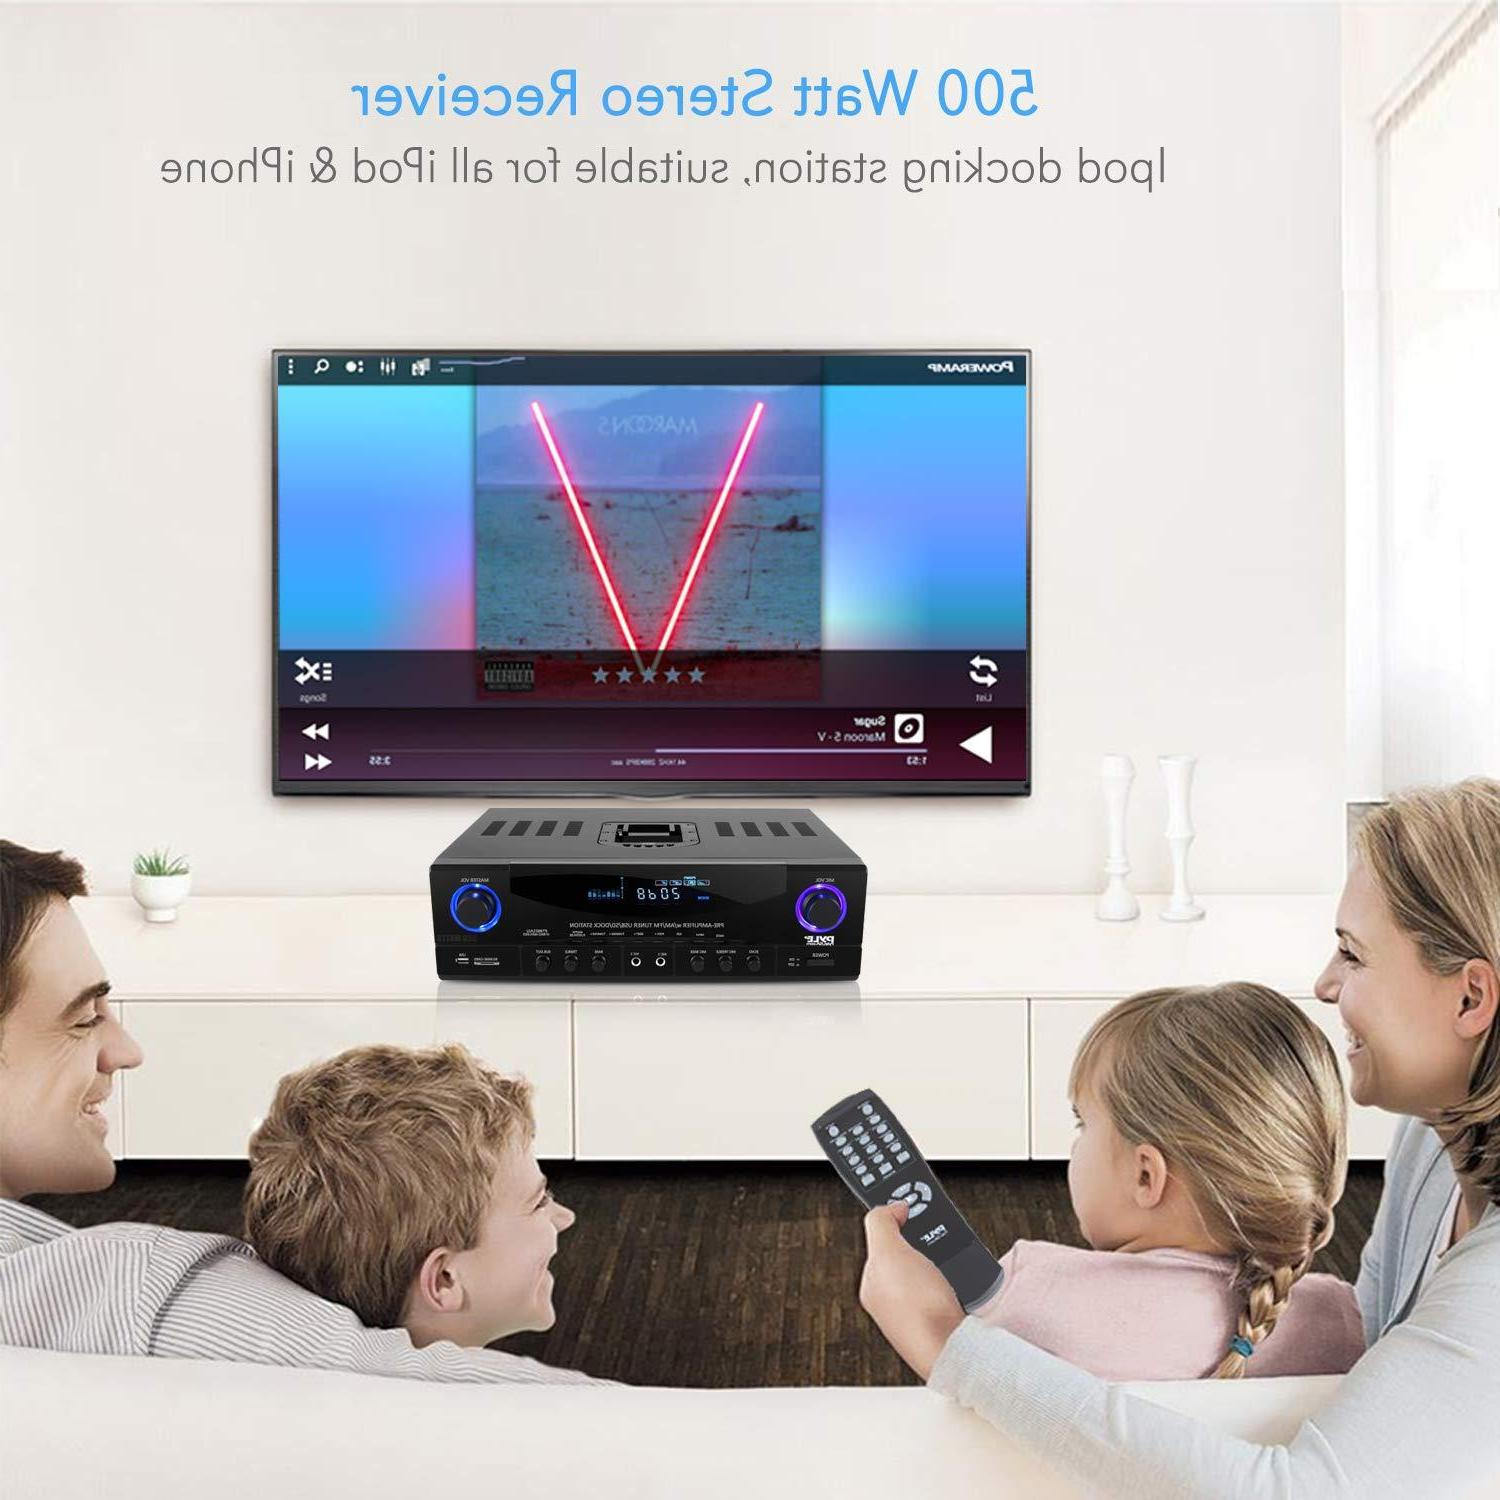 Home Amplifier System - 500W Channel Theater Power Sound